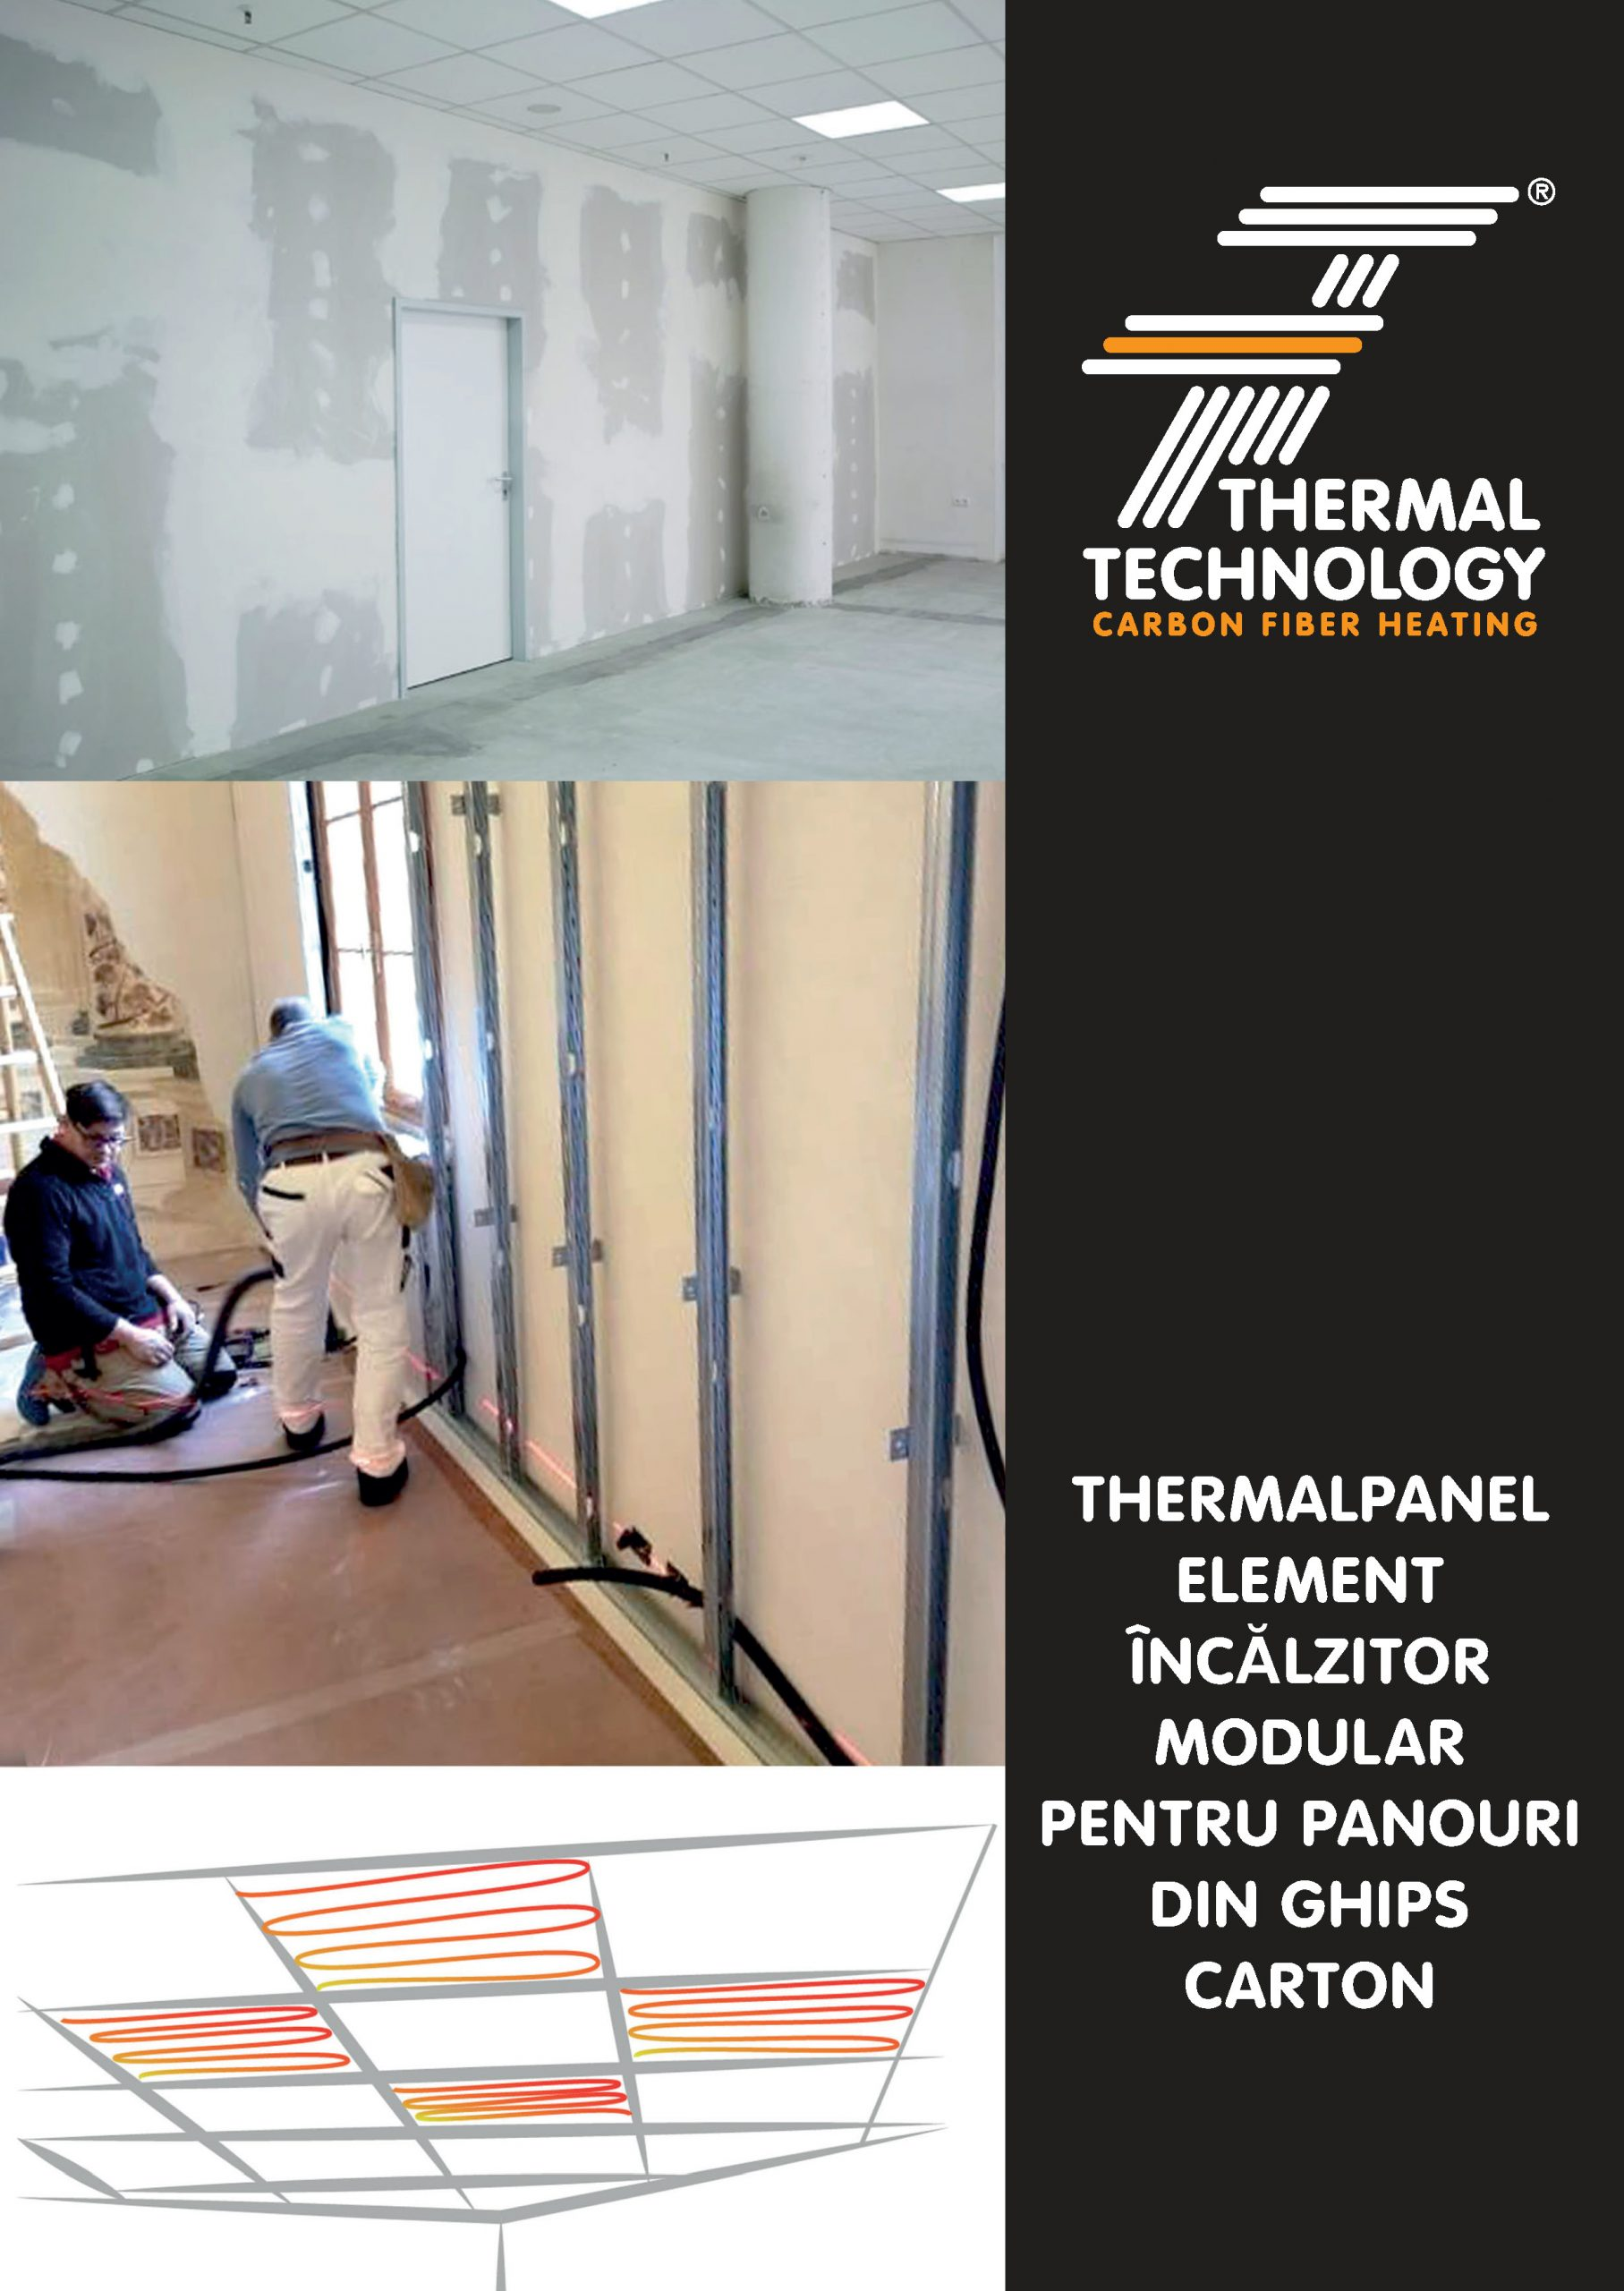 https://thermaltechnology.ro/wp-content/uploads/2020/03/PACG.A_Thermalpanel-element-incalzitor-modular-pentru-panouri-din-ghips-carton_Page_1-scaled.jpg